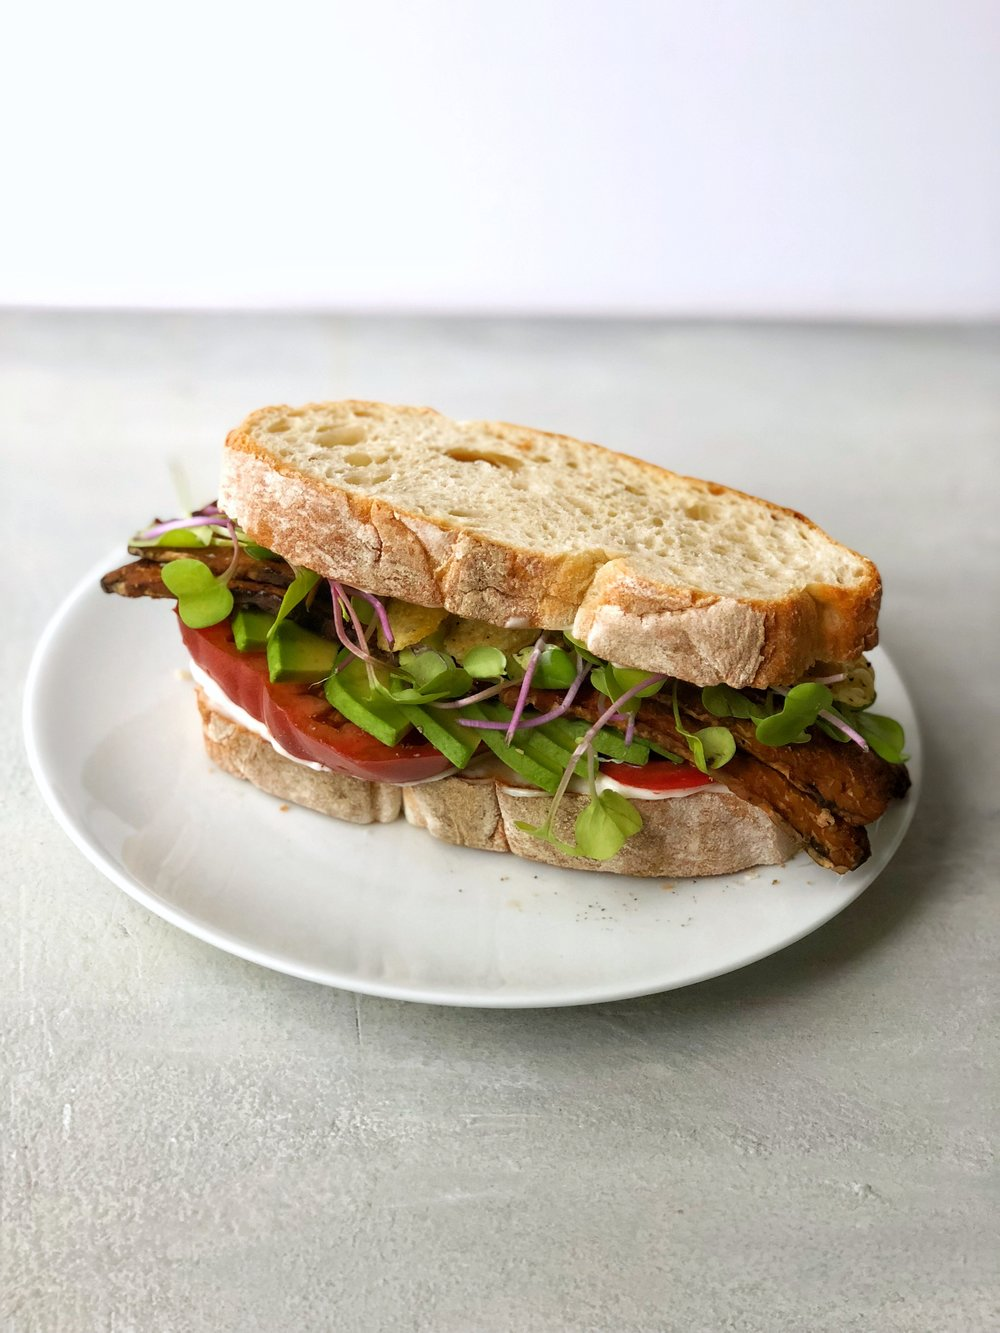 Heirloom Tomato Tempeh TBLTA! The most perfect of summer sandwiches gets an upgrade with tempeh bacon, avocado and crunchy kettle chips! #summer #sandwich #BLT #tomato #vegetarian #vegan